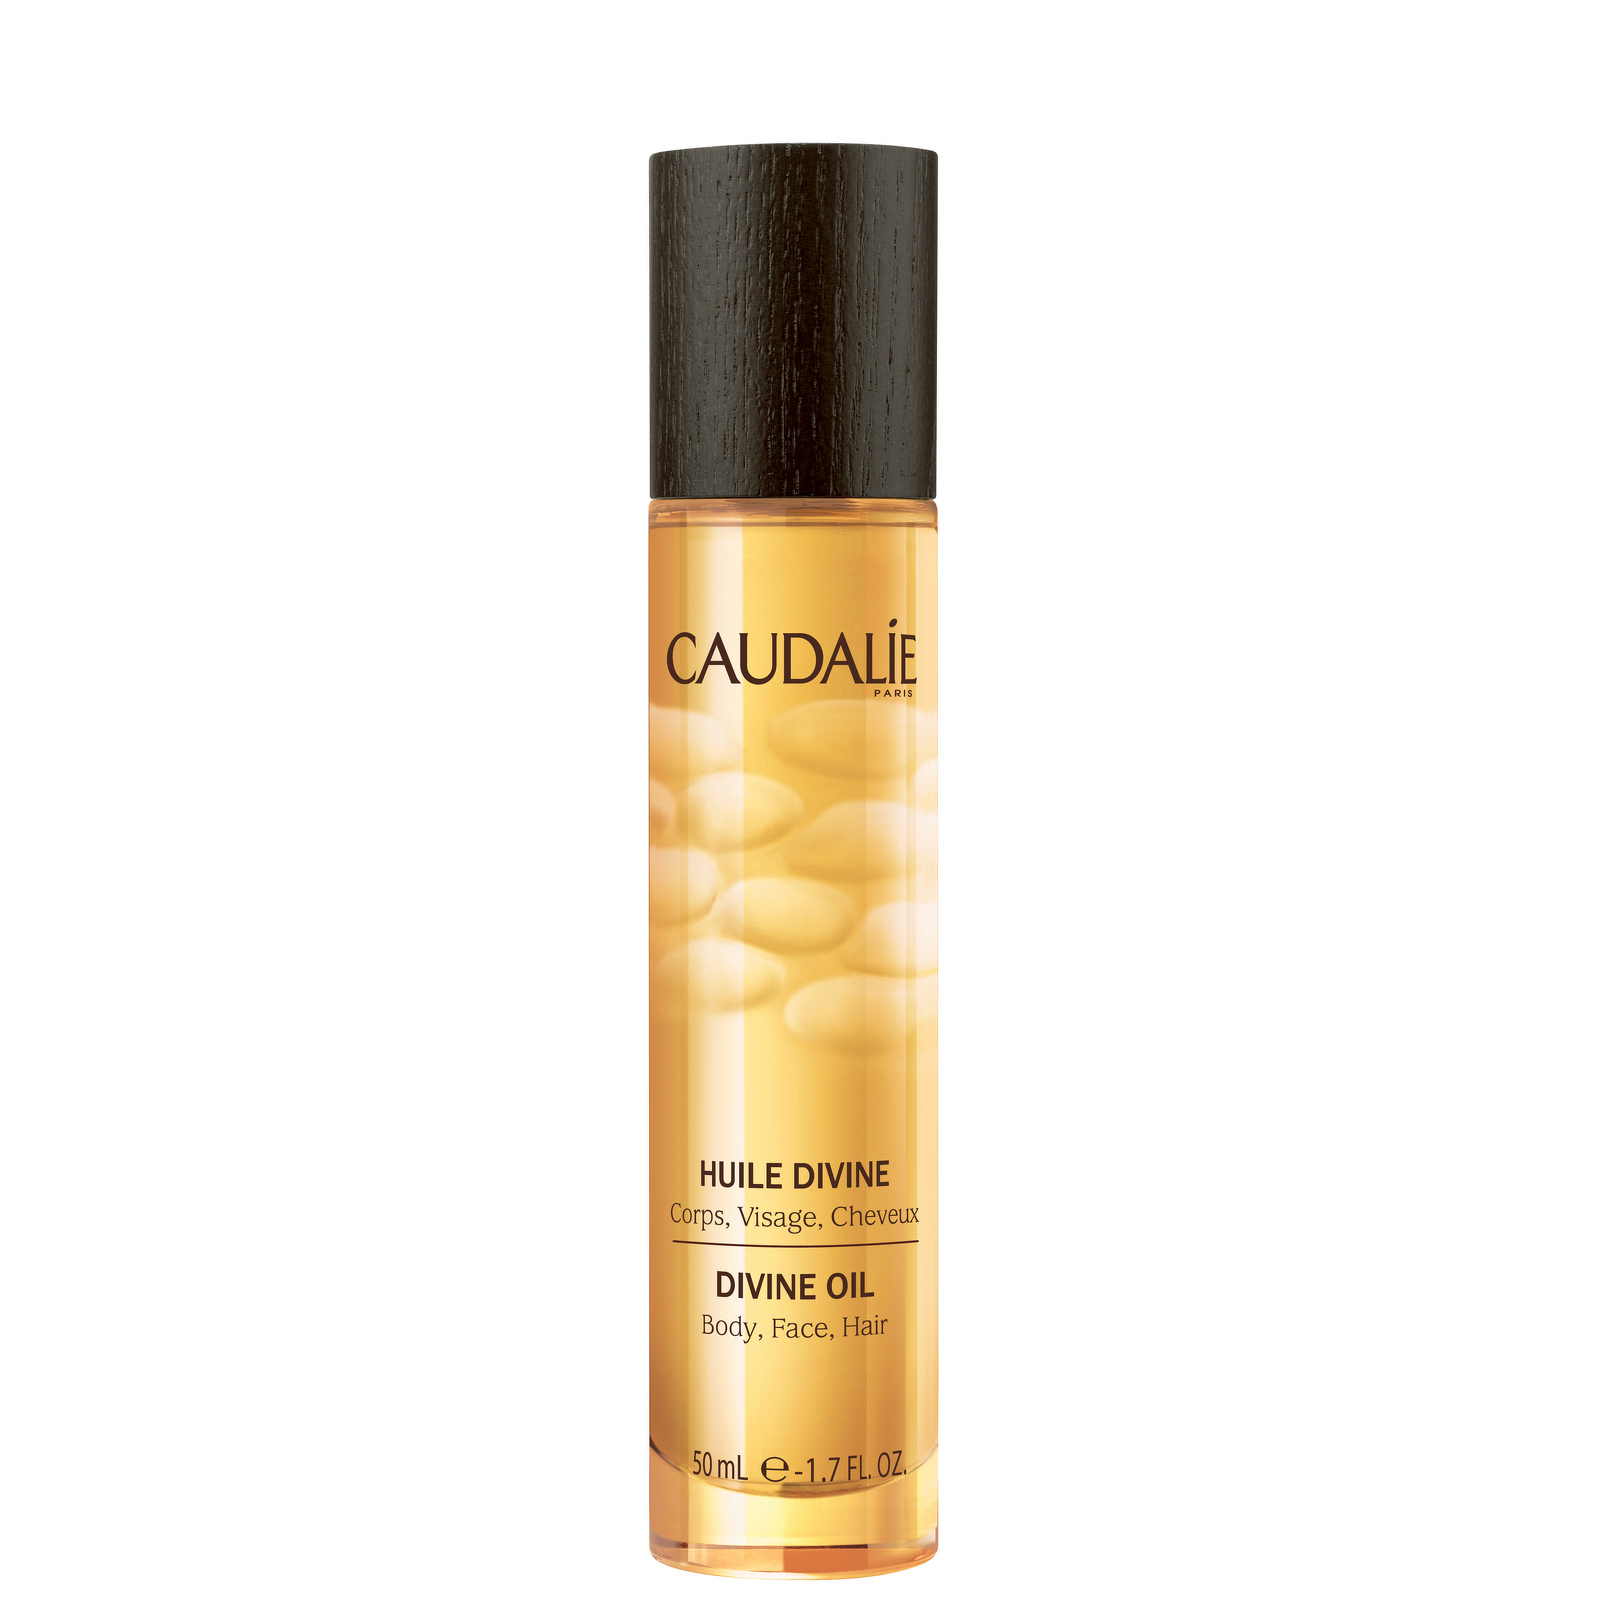 Caudalie Body Divine Oil 50ml